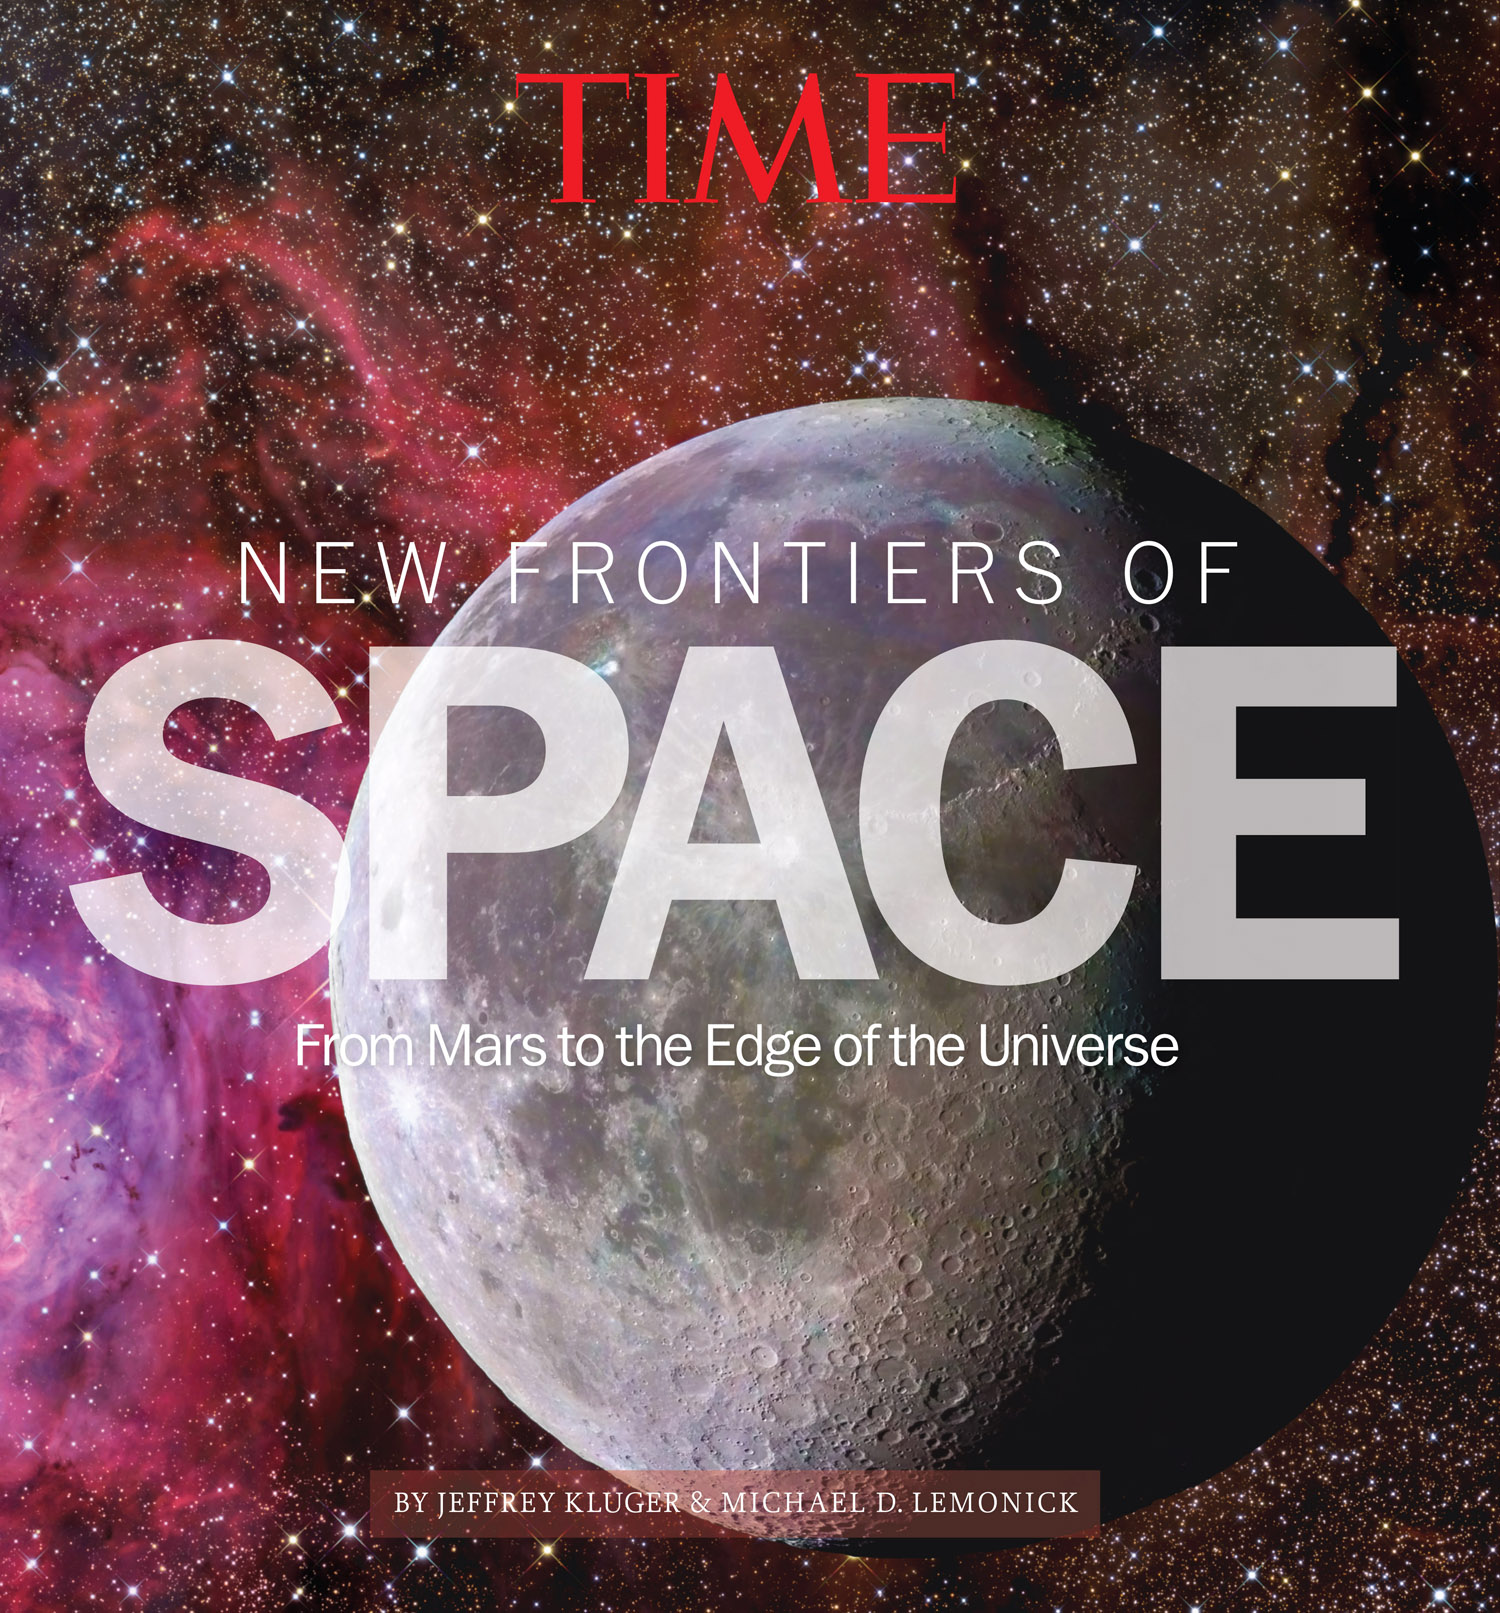 'New Frontiers of Space' Book Brings Universe Down to Earth